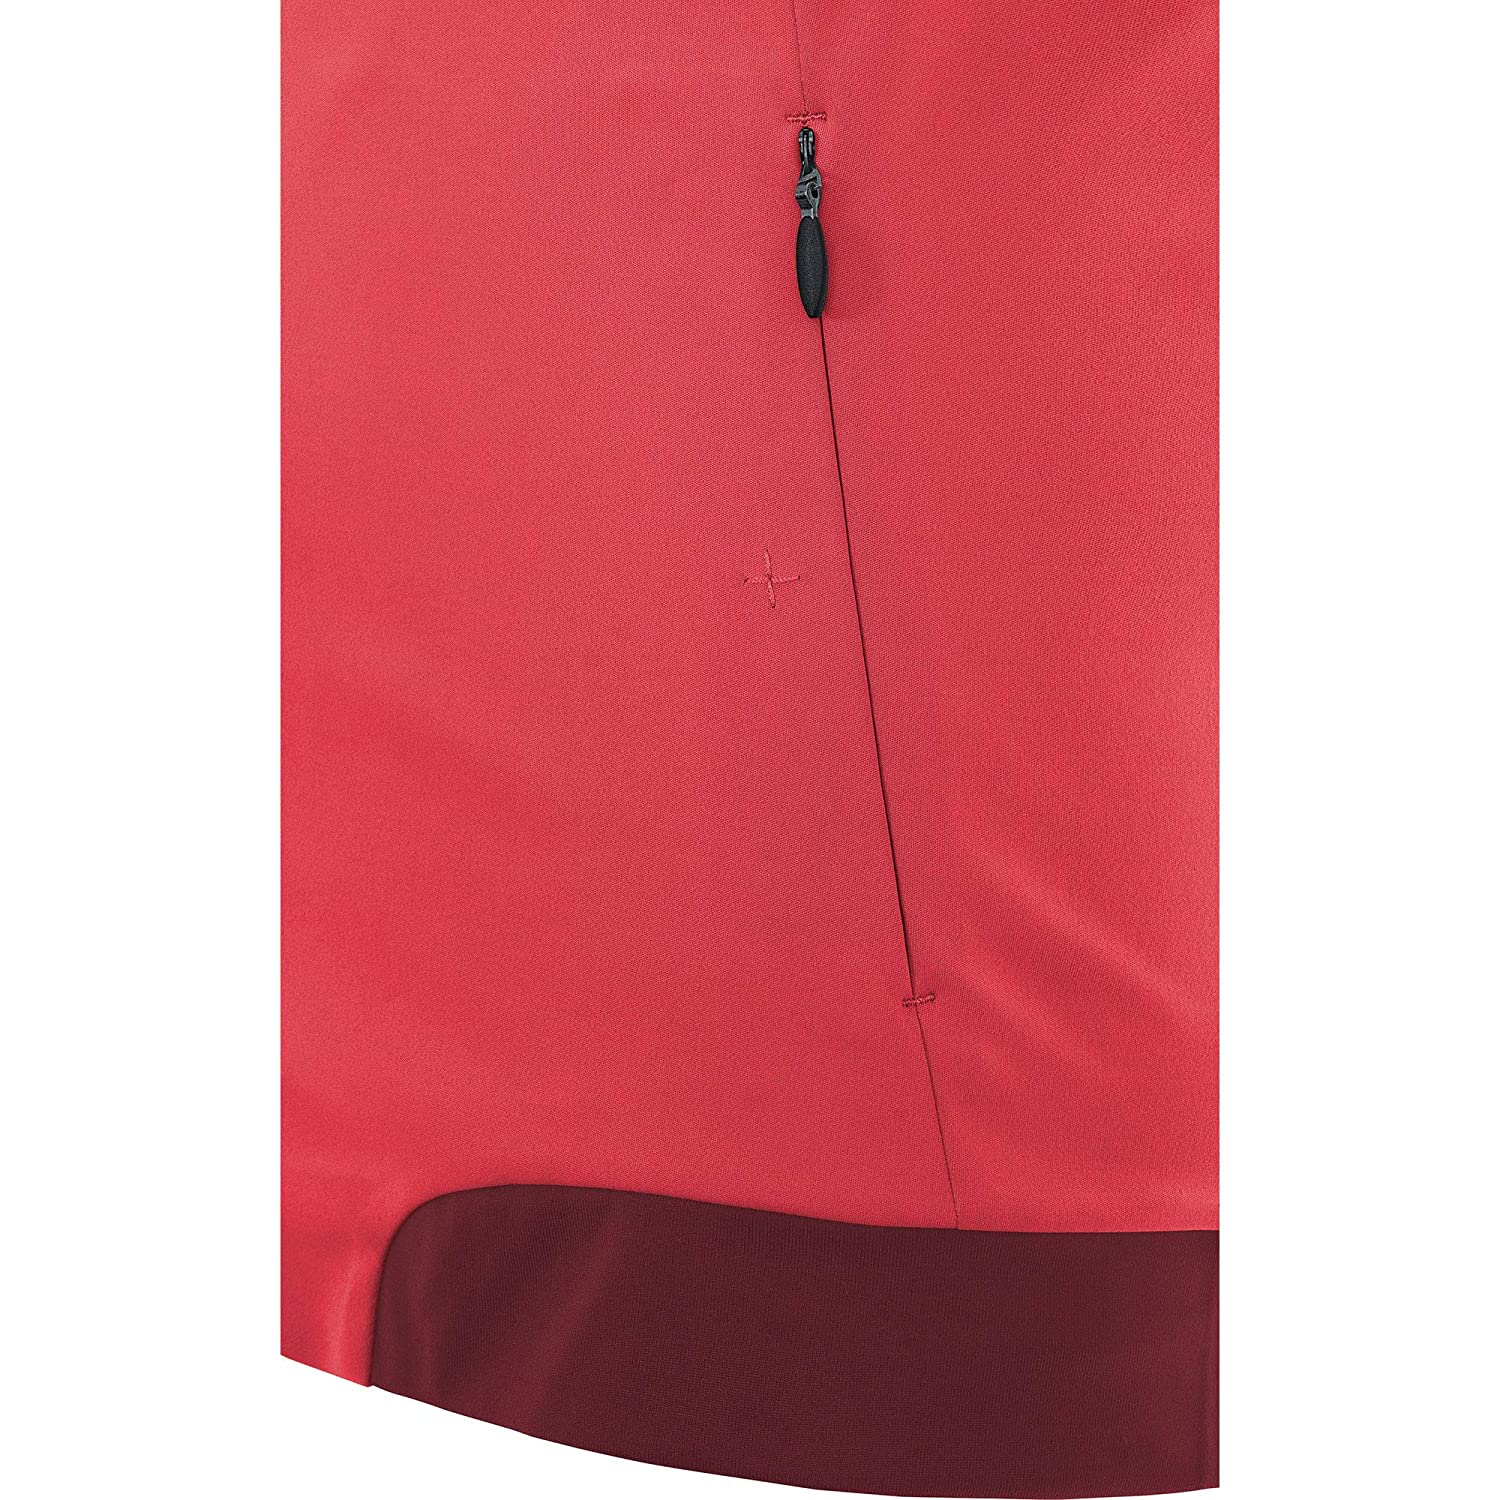 Size: L Color: Hibiscus Pink//Chestnut Red GORE Wear Womens Windproof Hooded Cycling Jacket 100218 C5 Women/'s WINDSTOPPER Trail Hooded Cycling Jacket Gore Bike Wear C5 Womens WINDSTOPPER Trail Hooded Cycling Jacket